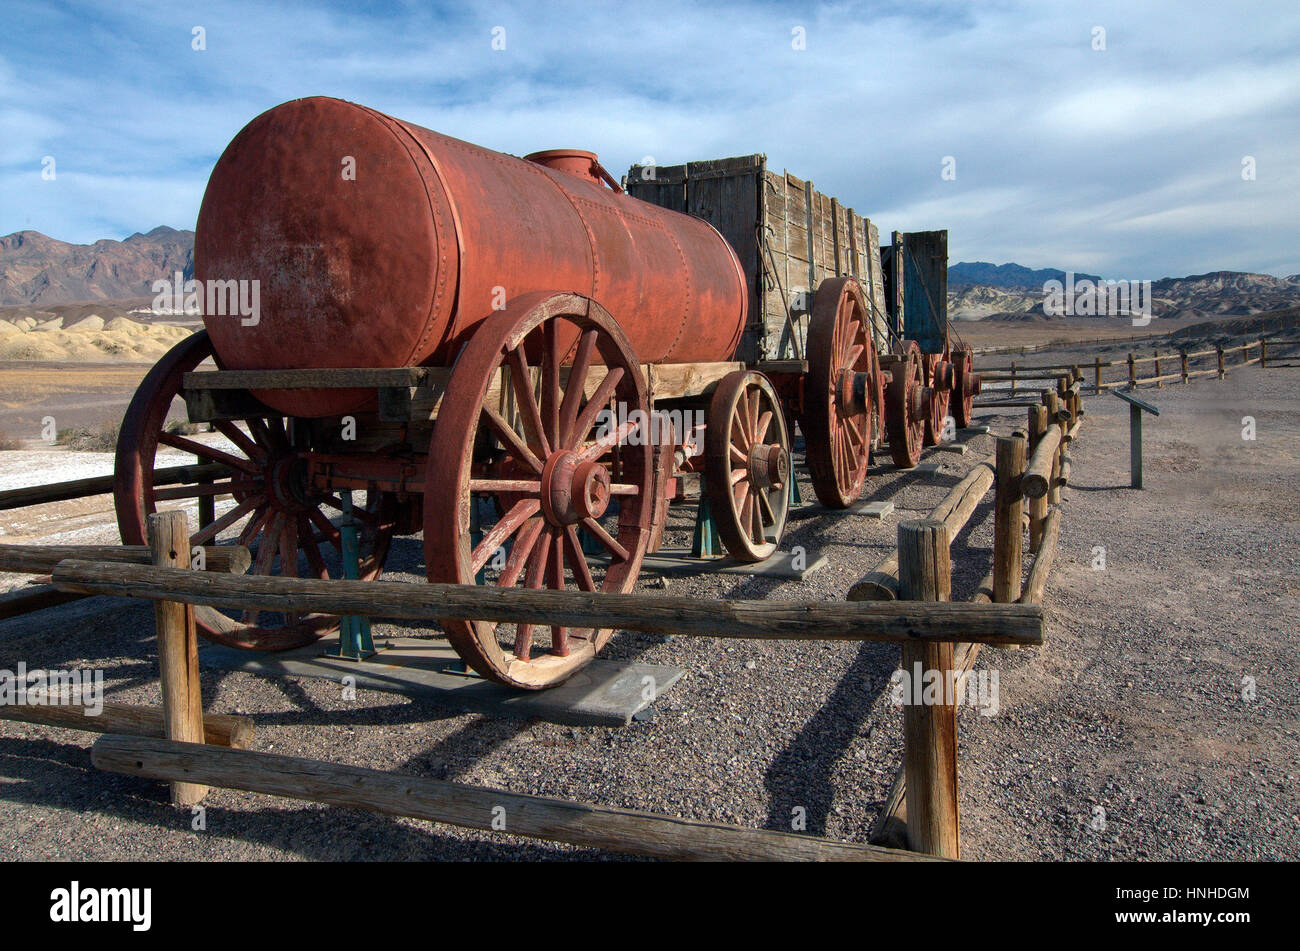 old-mining-wagon-at-the-borax-museum-death-valley-national-park-HNHDGM.jpg